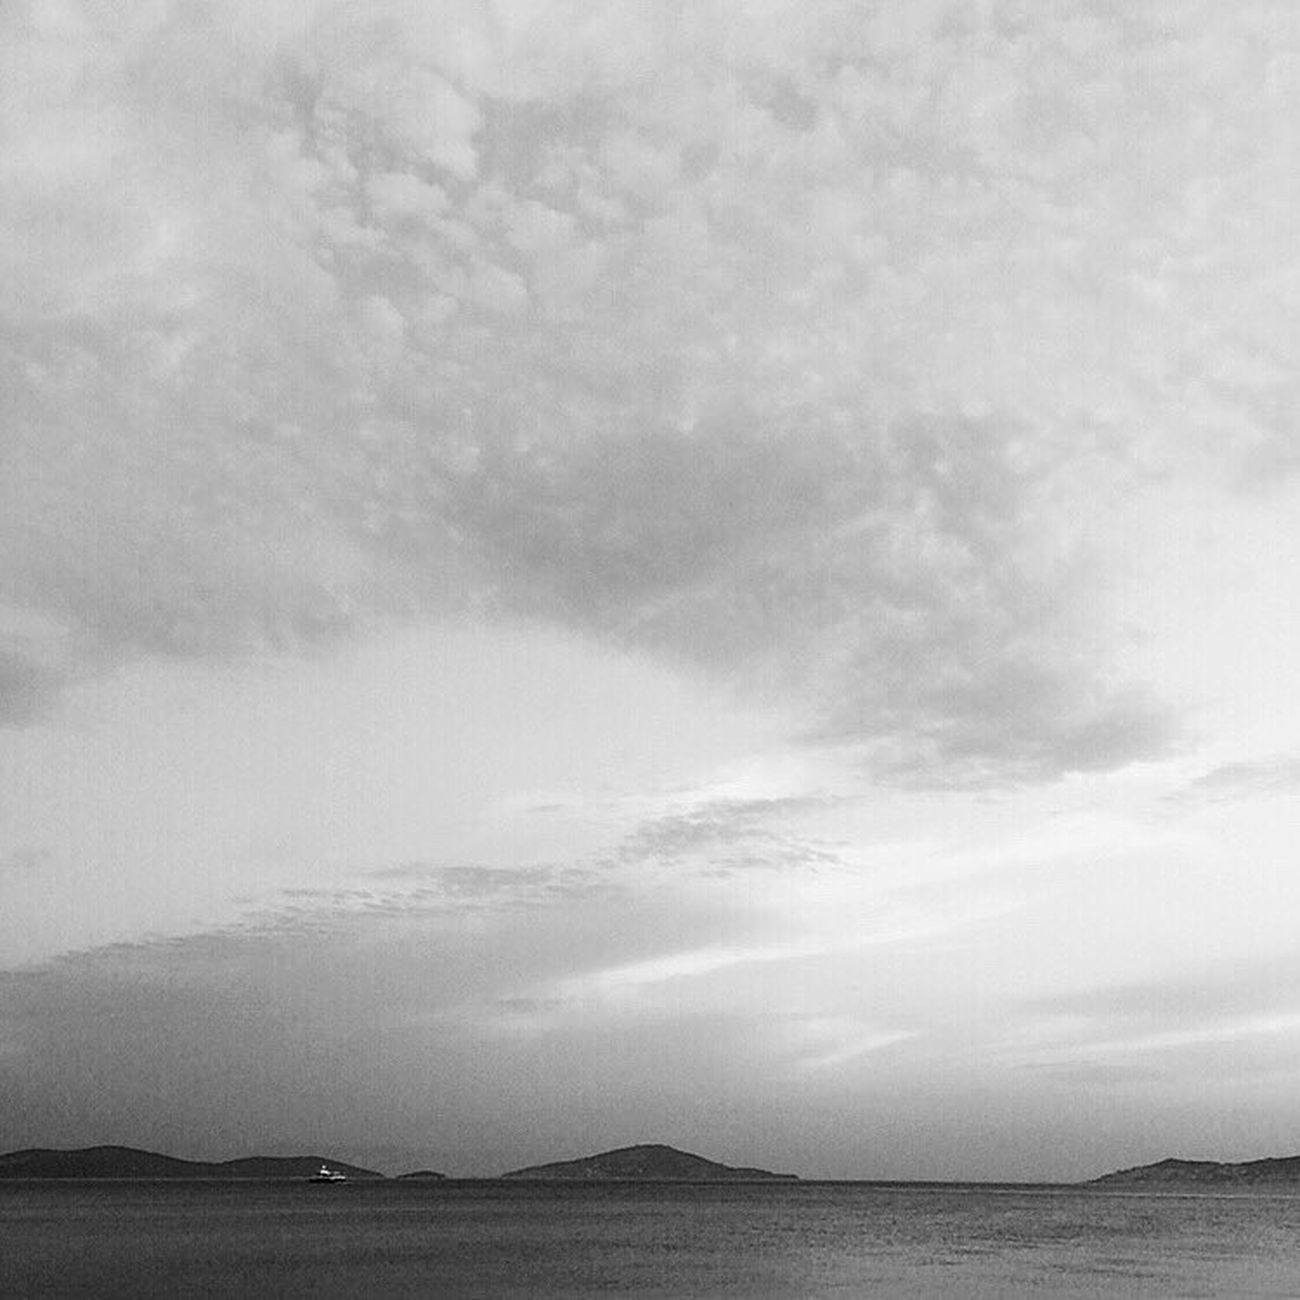 🌊🚢 Sky Landscape No People Cloud - Sky Nature Tranquil Scene Day Tranquility Outdoors Scenics Beauty In Nature Storm Cloud Gothic OpenEdit Artphoto Popular Photos Check This Out Aesthetics Today's Hot Look Monochrome Photography ArtWork Taking Photos Beauty In Nature Artphotography